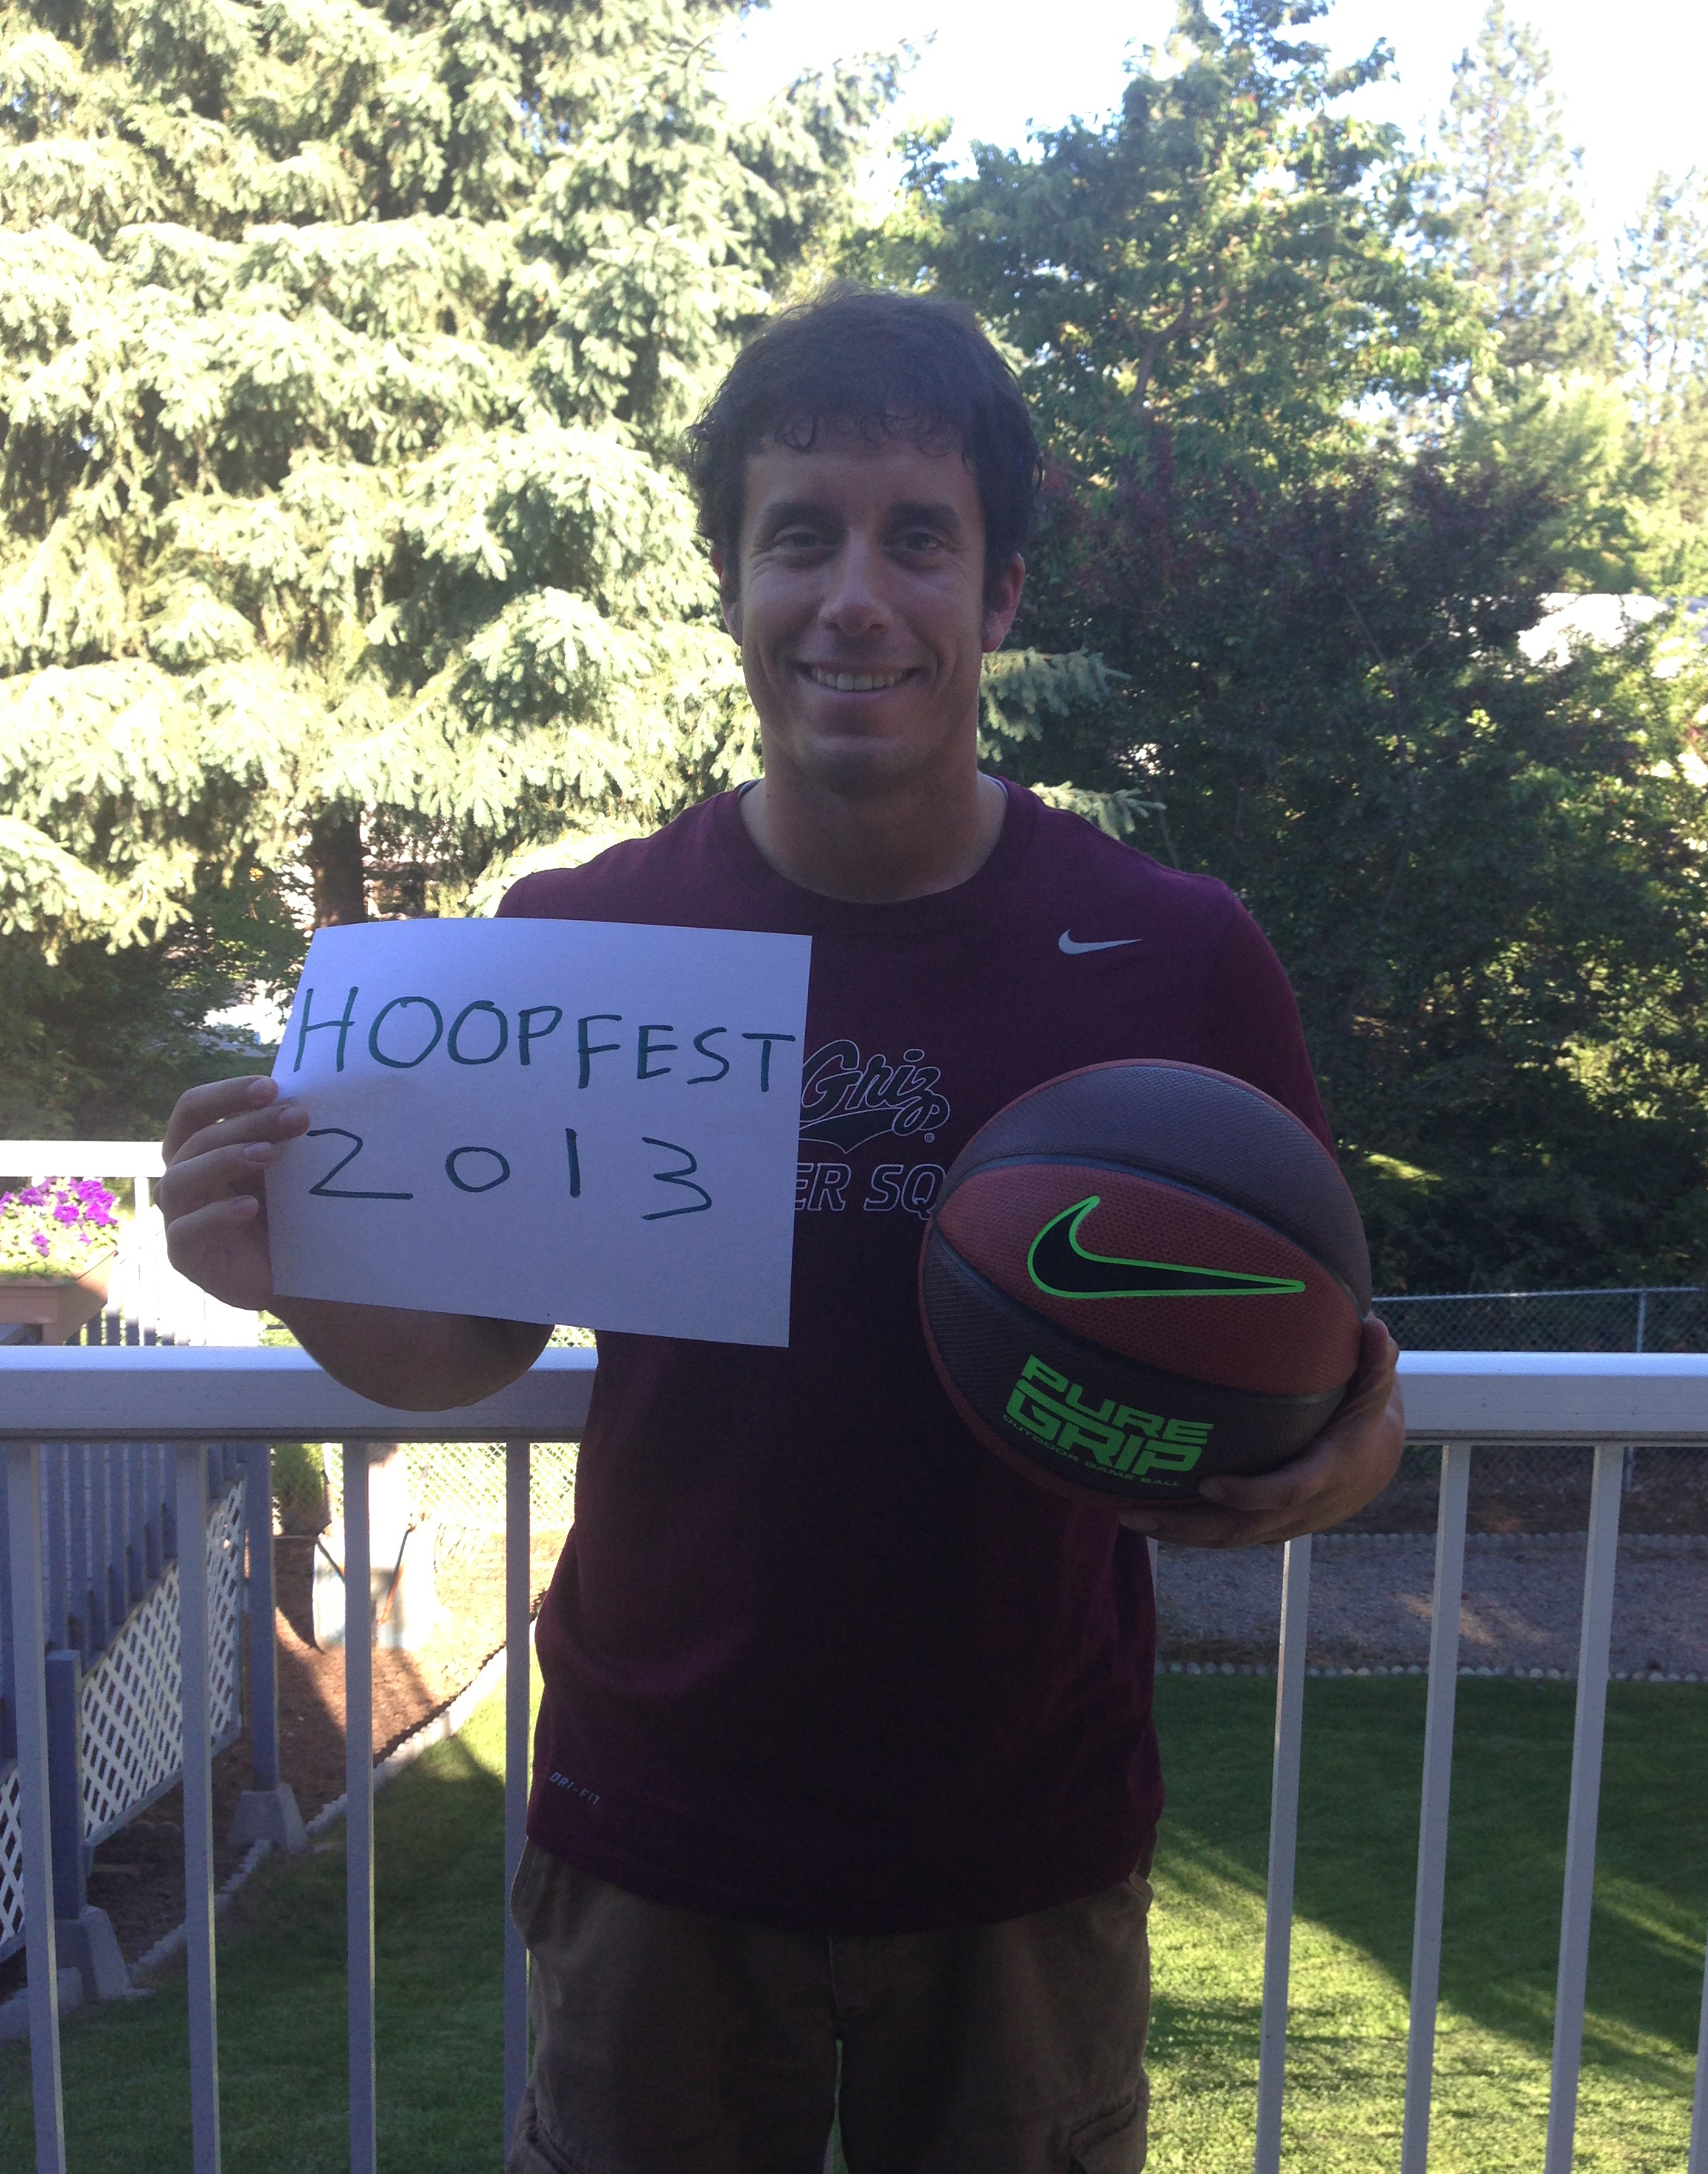 I am pumped up for Hoopfest 2013!!